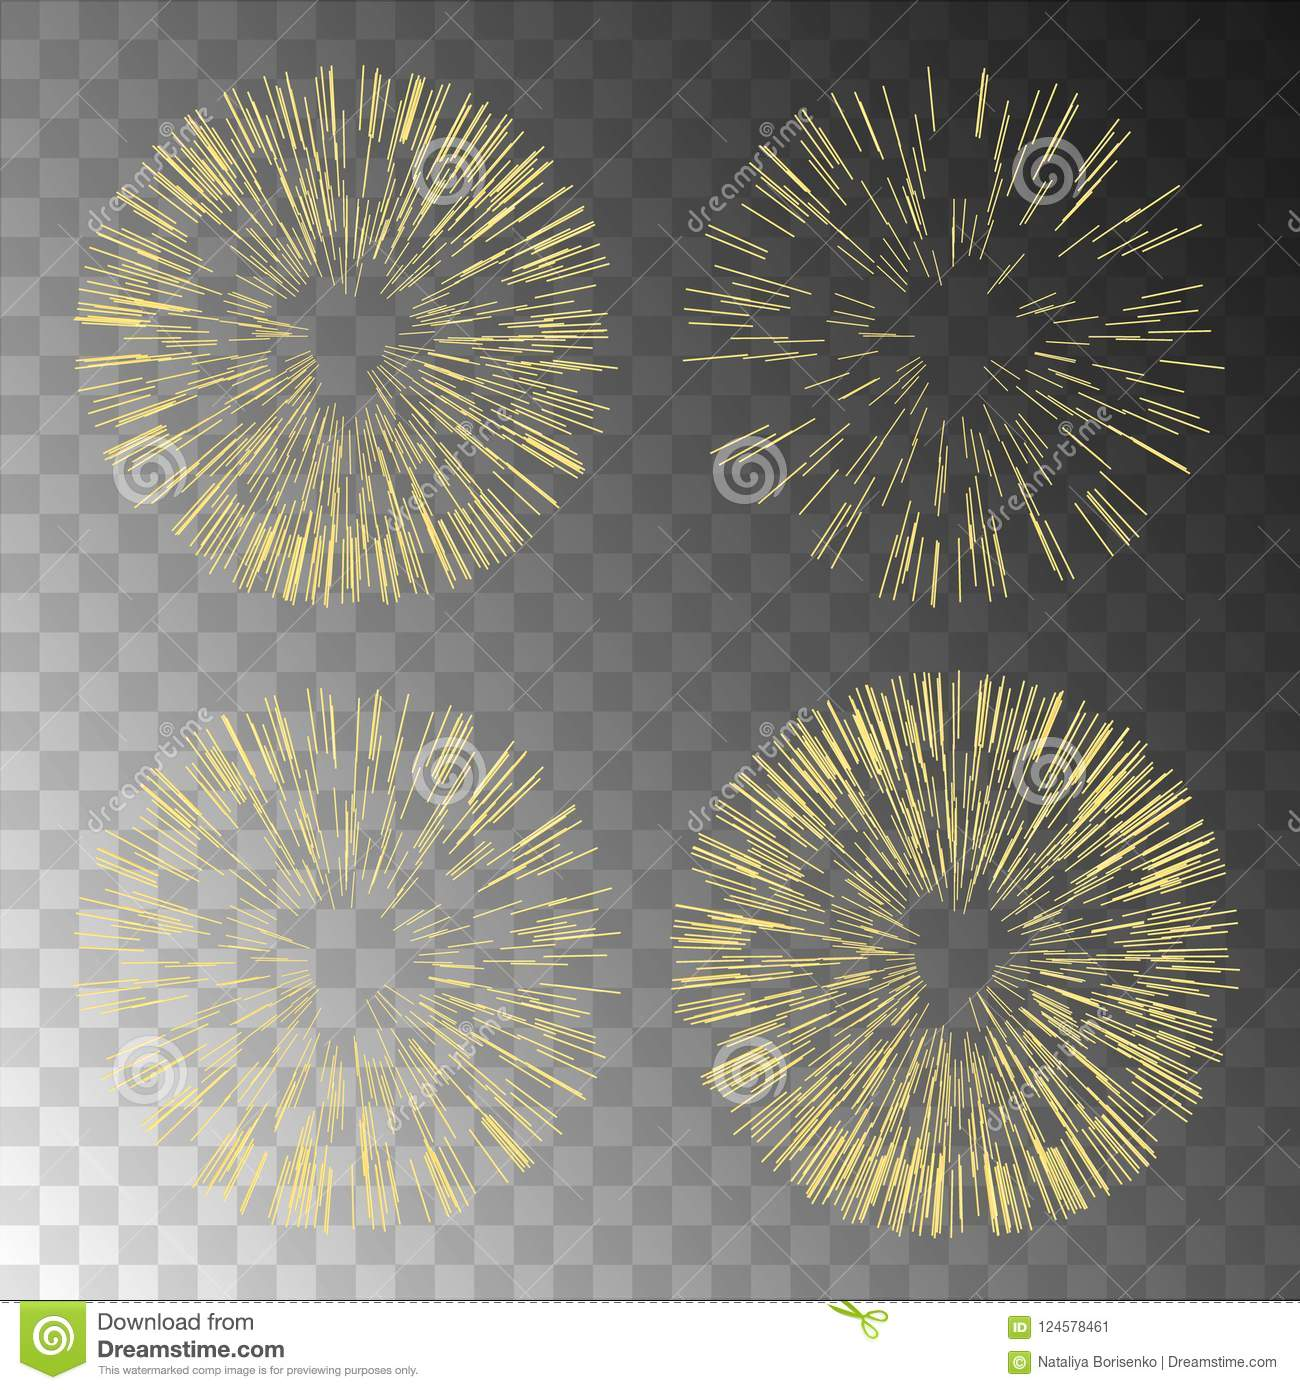 Gold fireworks on transparent background.Fireworks coll